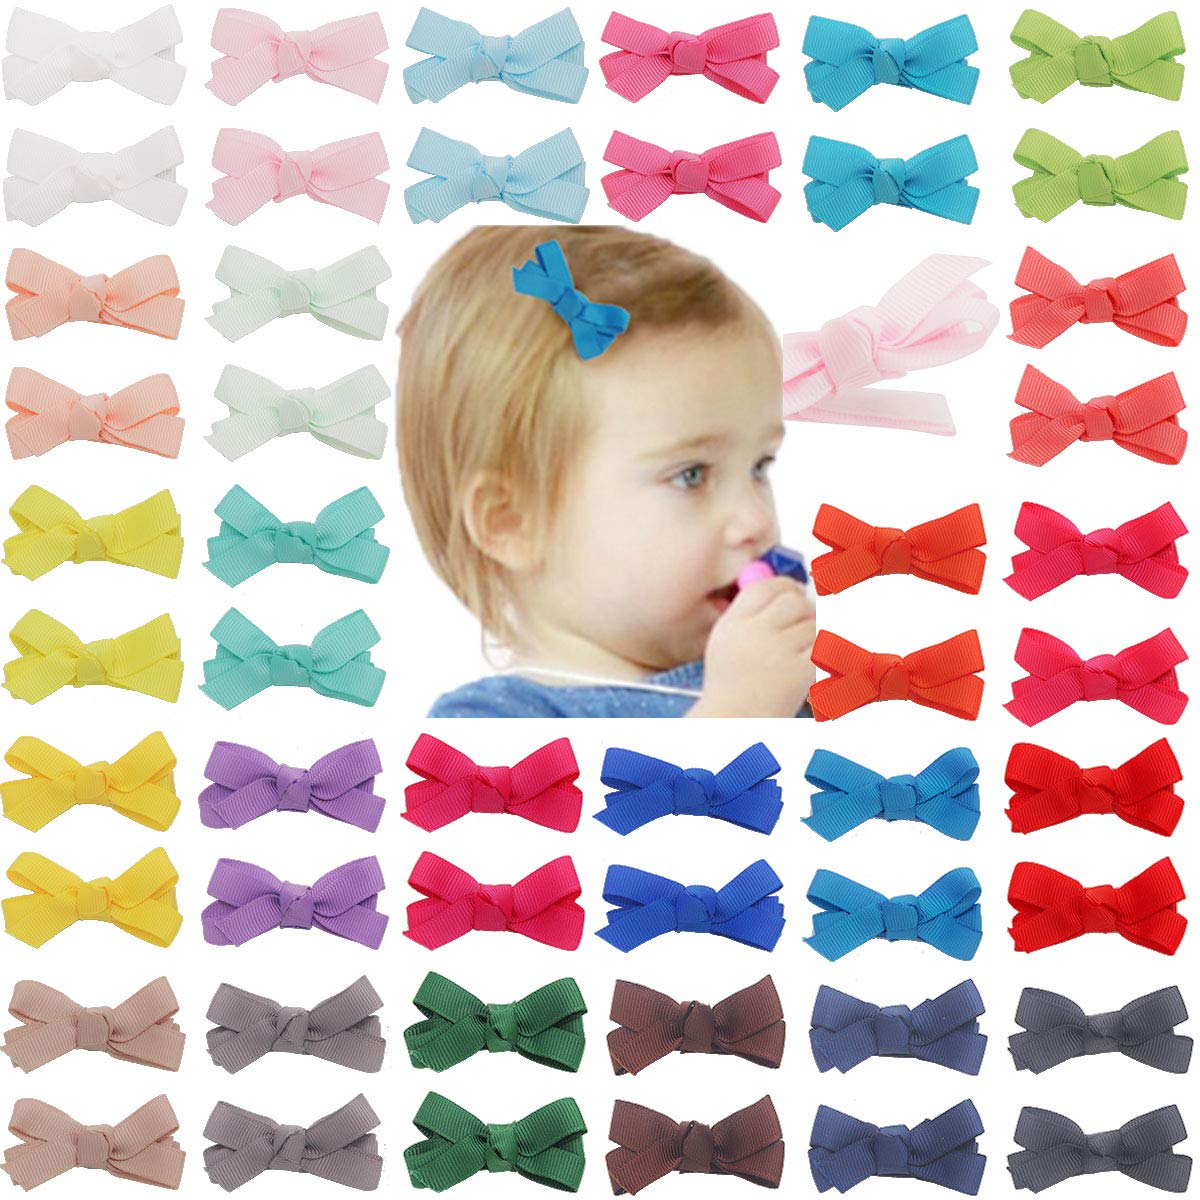 Qearl 50Pcs Super sale period limited Rapid rise 2 Inch Tiny Grosgrain Lined Ribbon Fully W Hair Bows